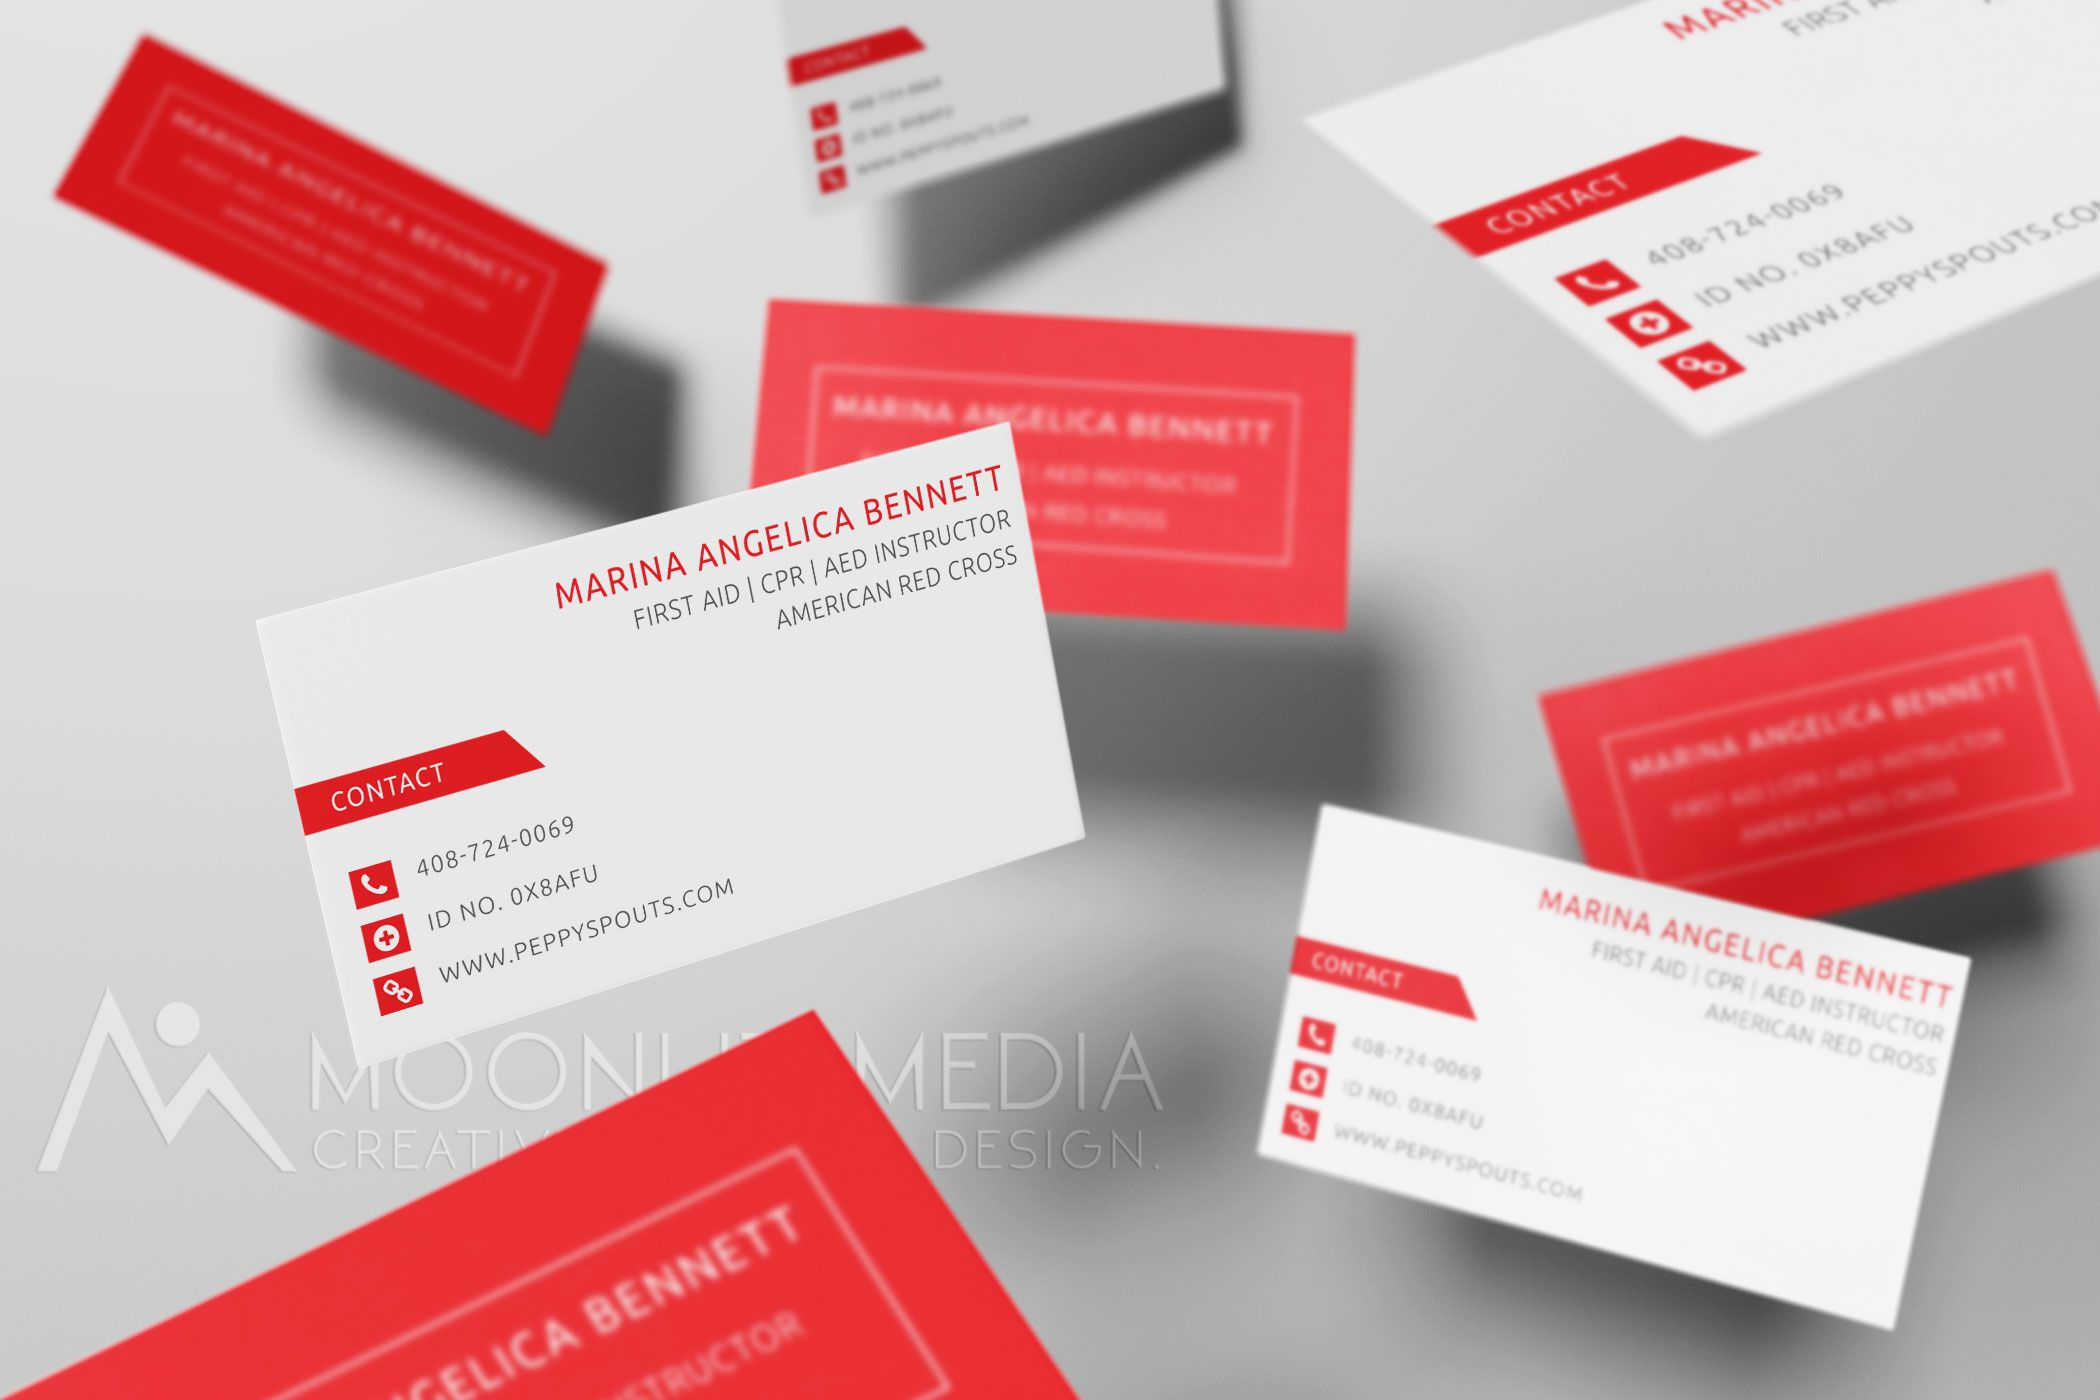 Silk business cards for an redcross certified cpr instructor silk business cards for an redcross certified cpr instructor moonlitmedia 1betcityfo Images